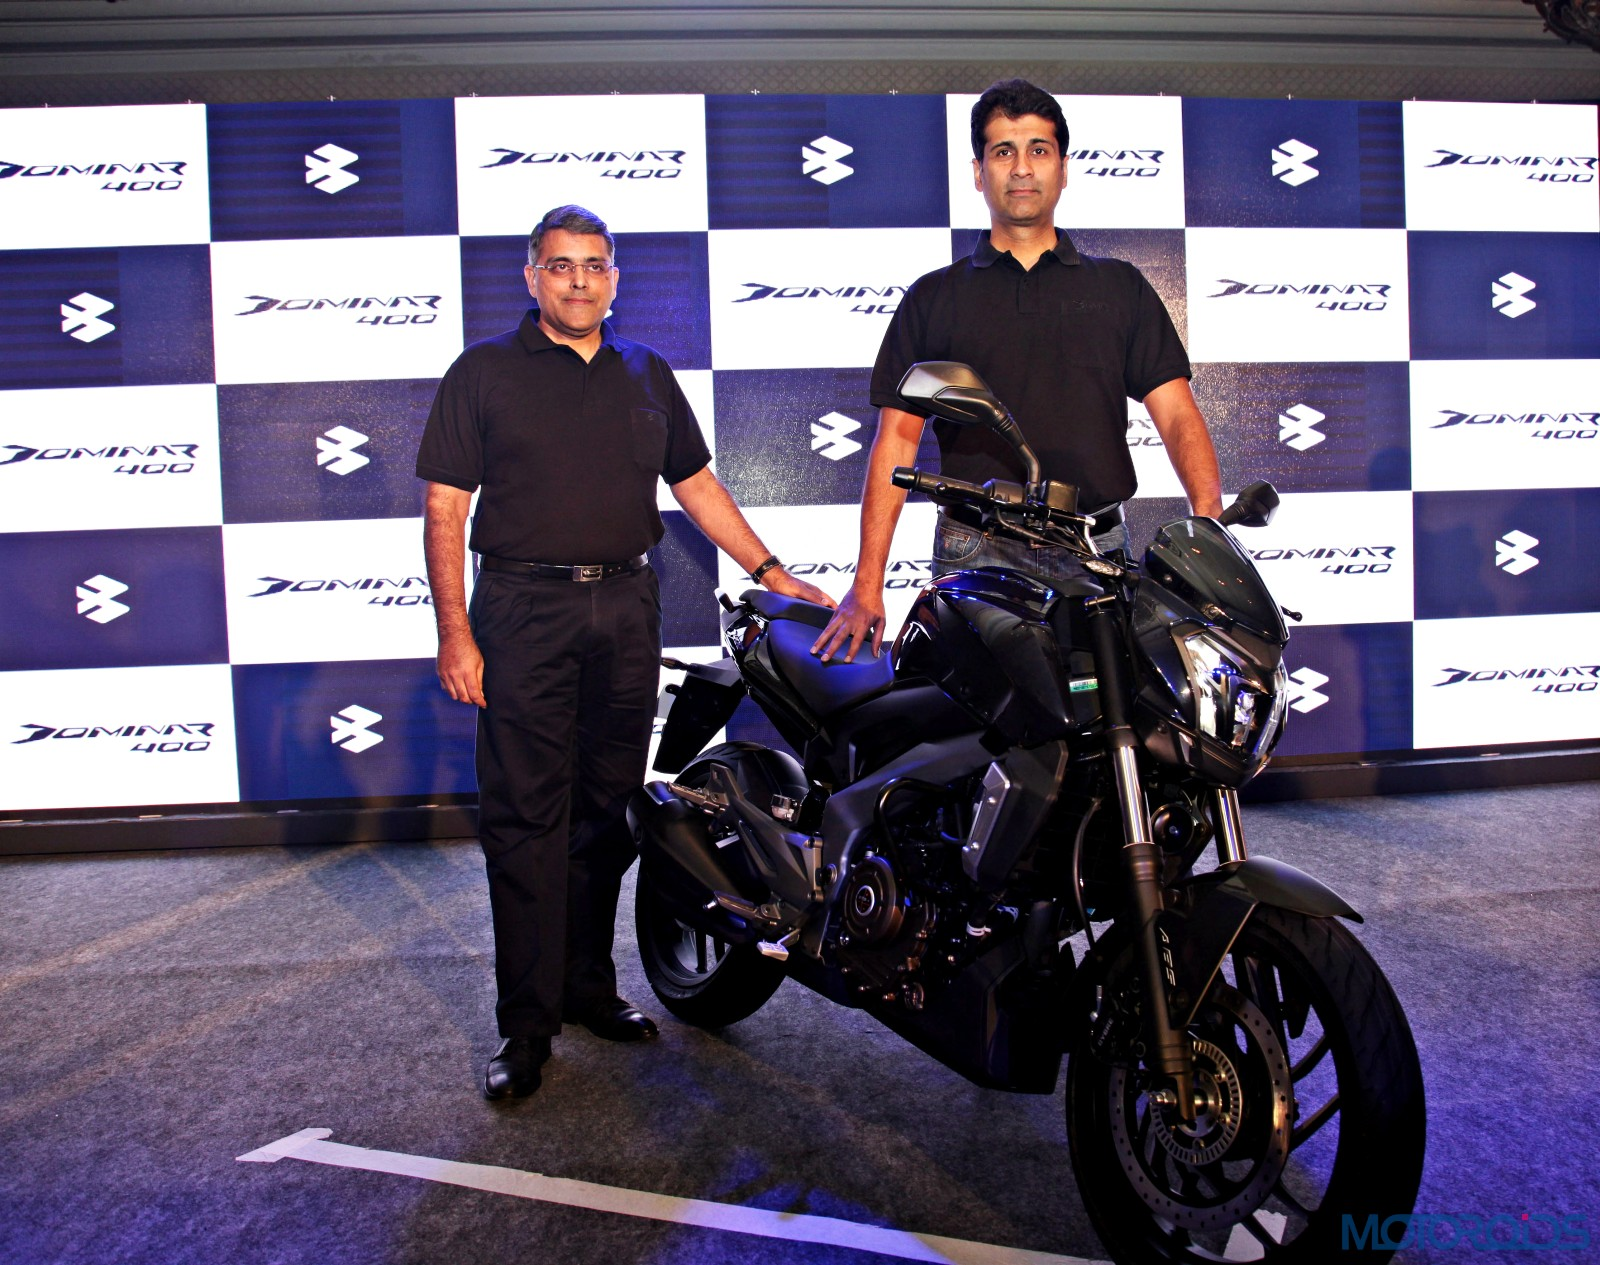 bajaj-Dominar-India-Launch-Images-19